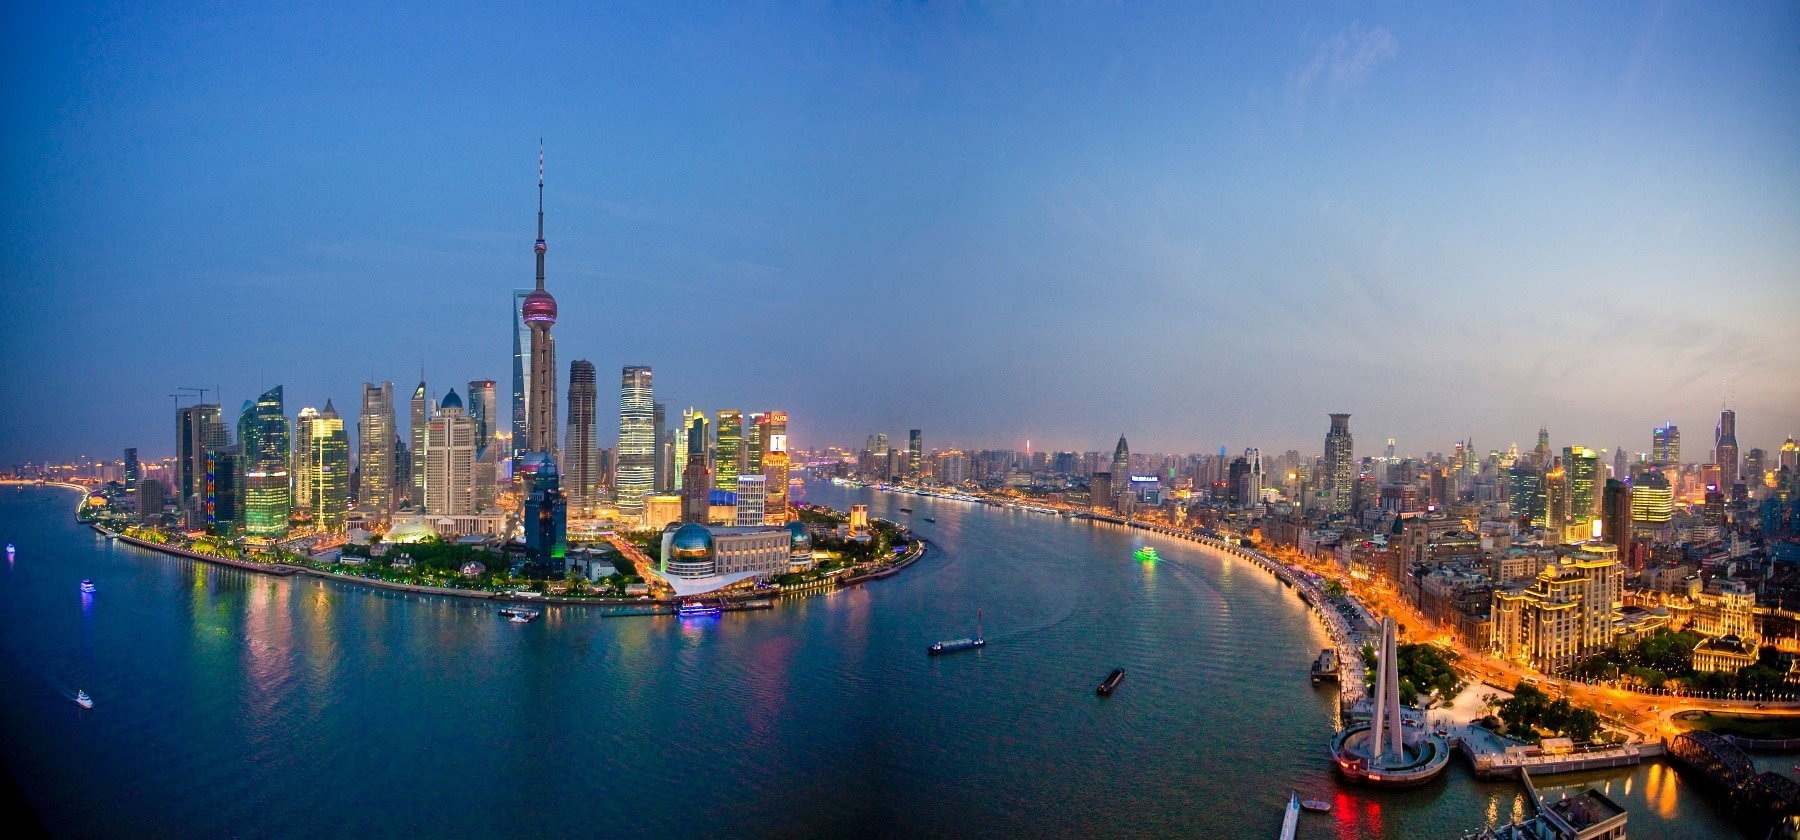 Shanghai - imagine panoramică